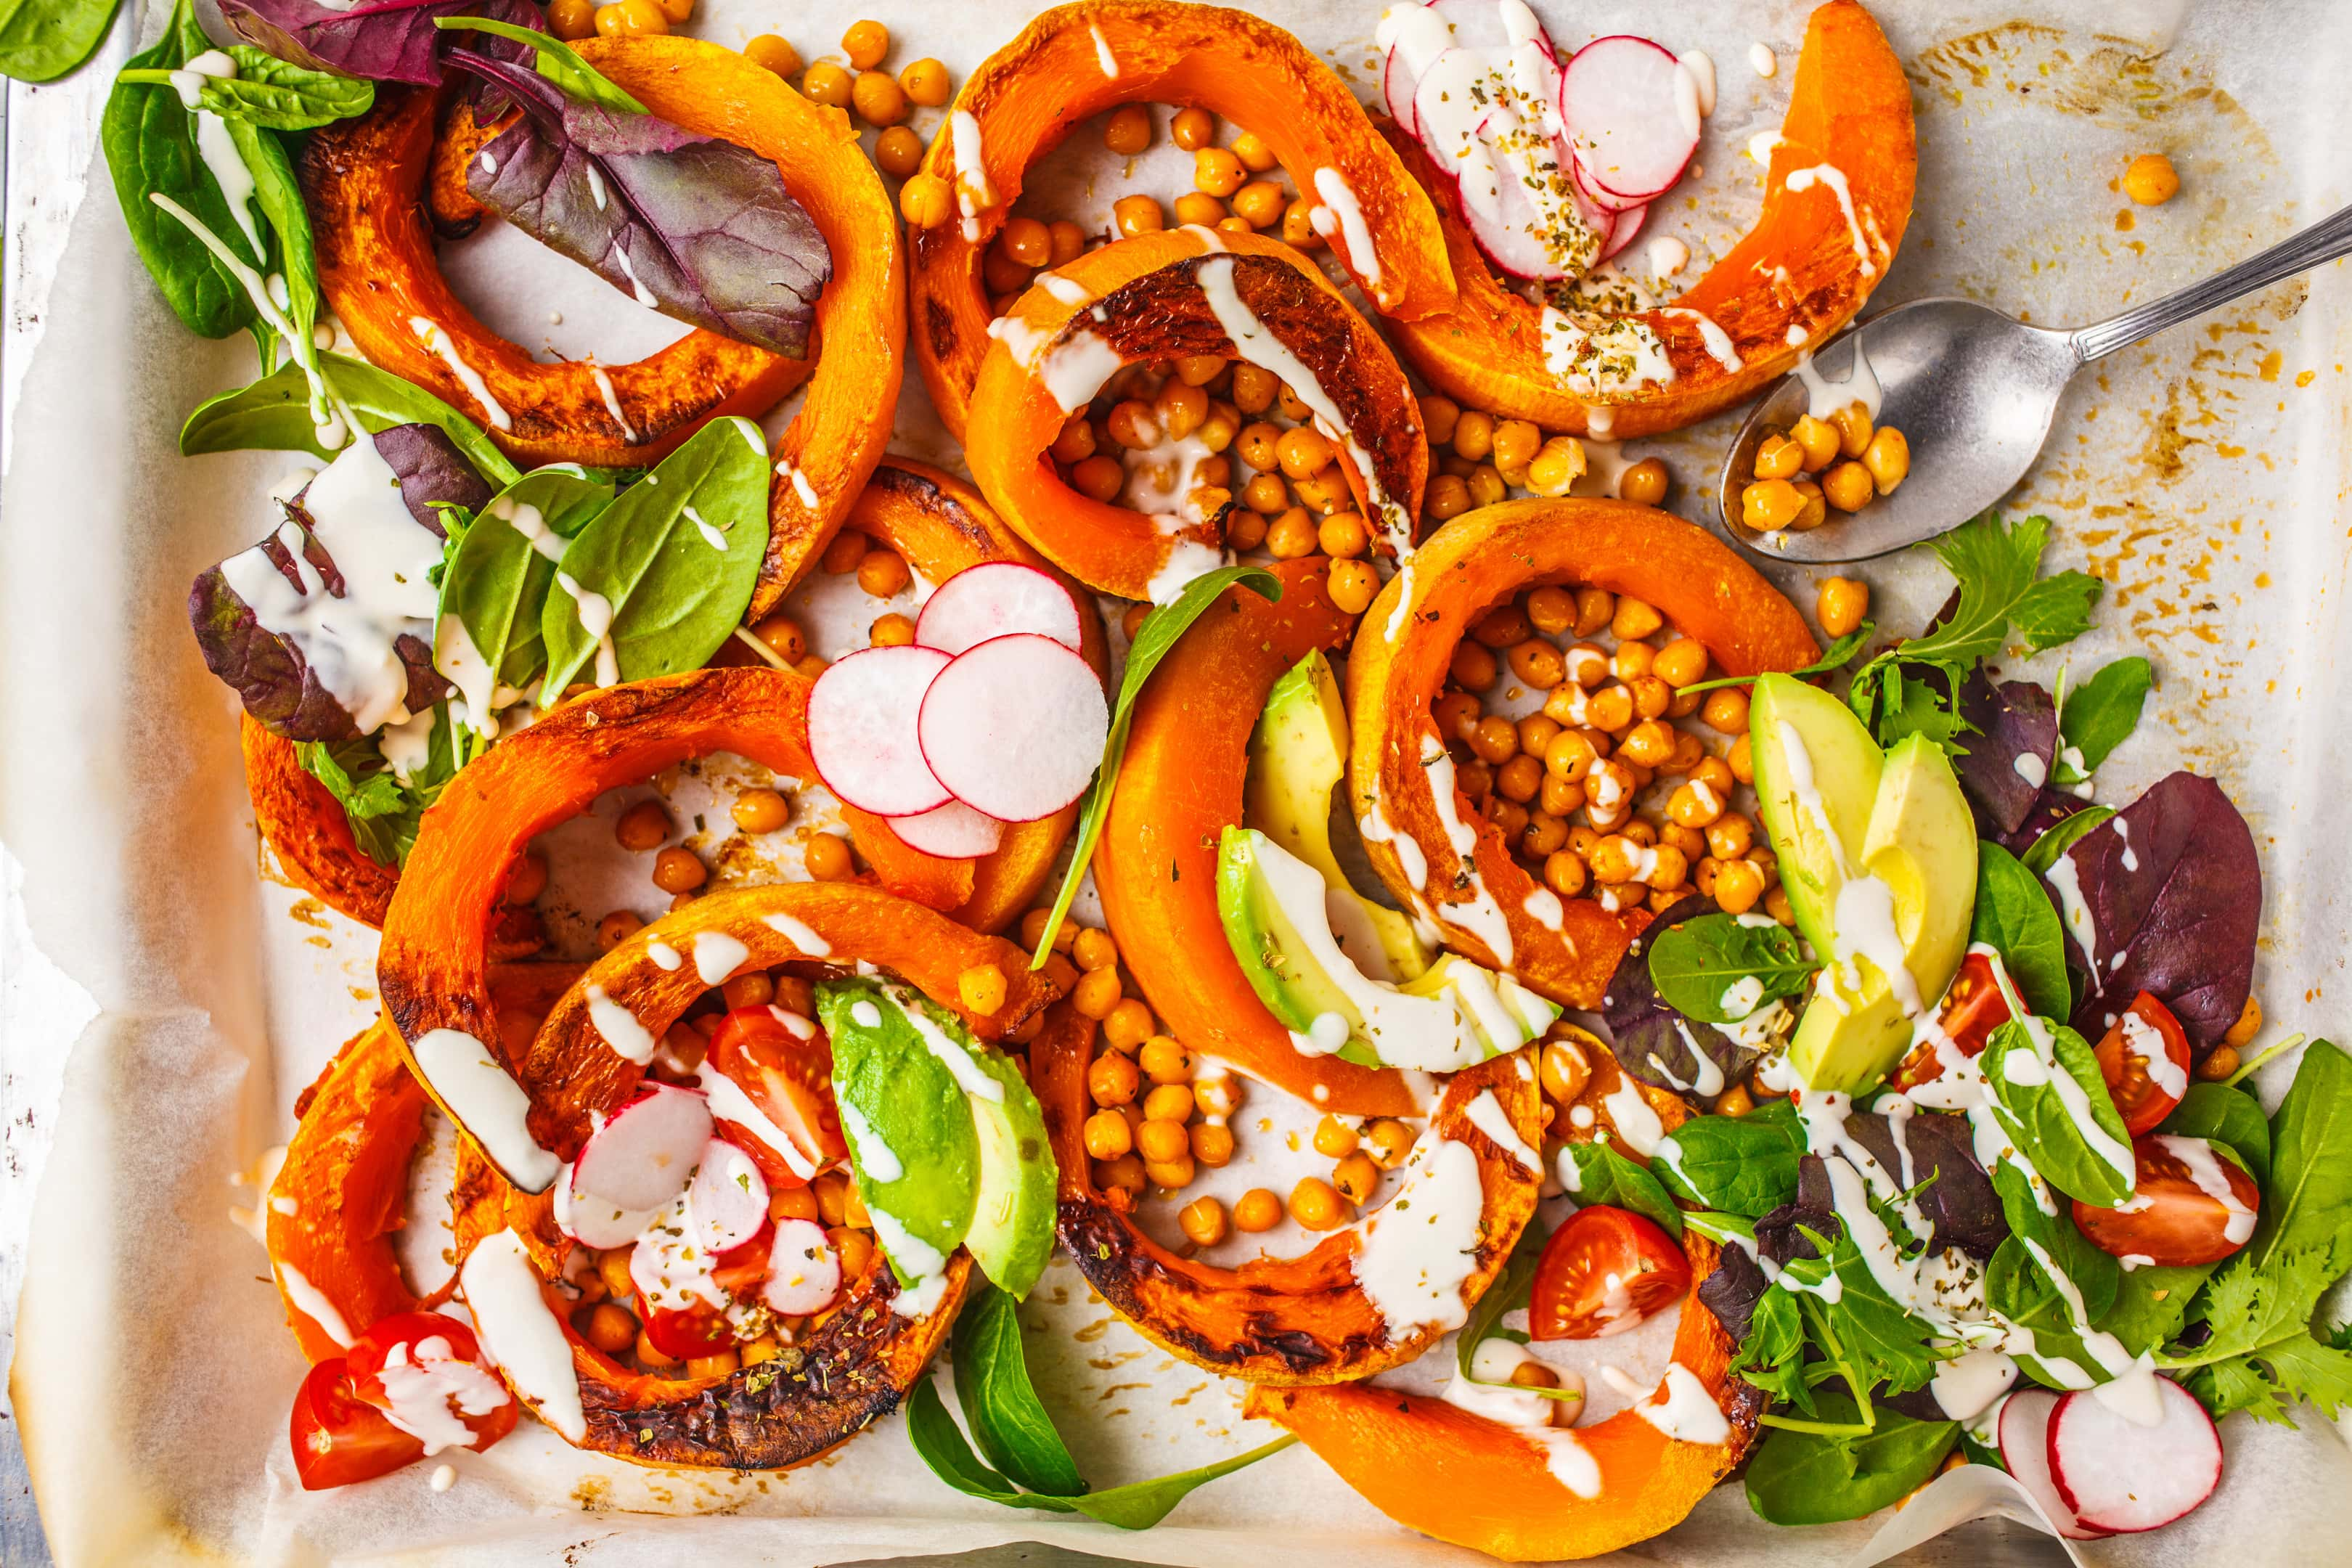 Plant based diet baked pumpkin with chickpeas and avocado